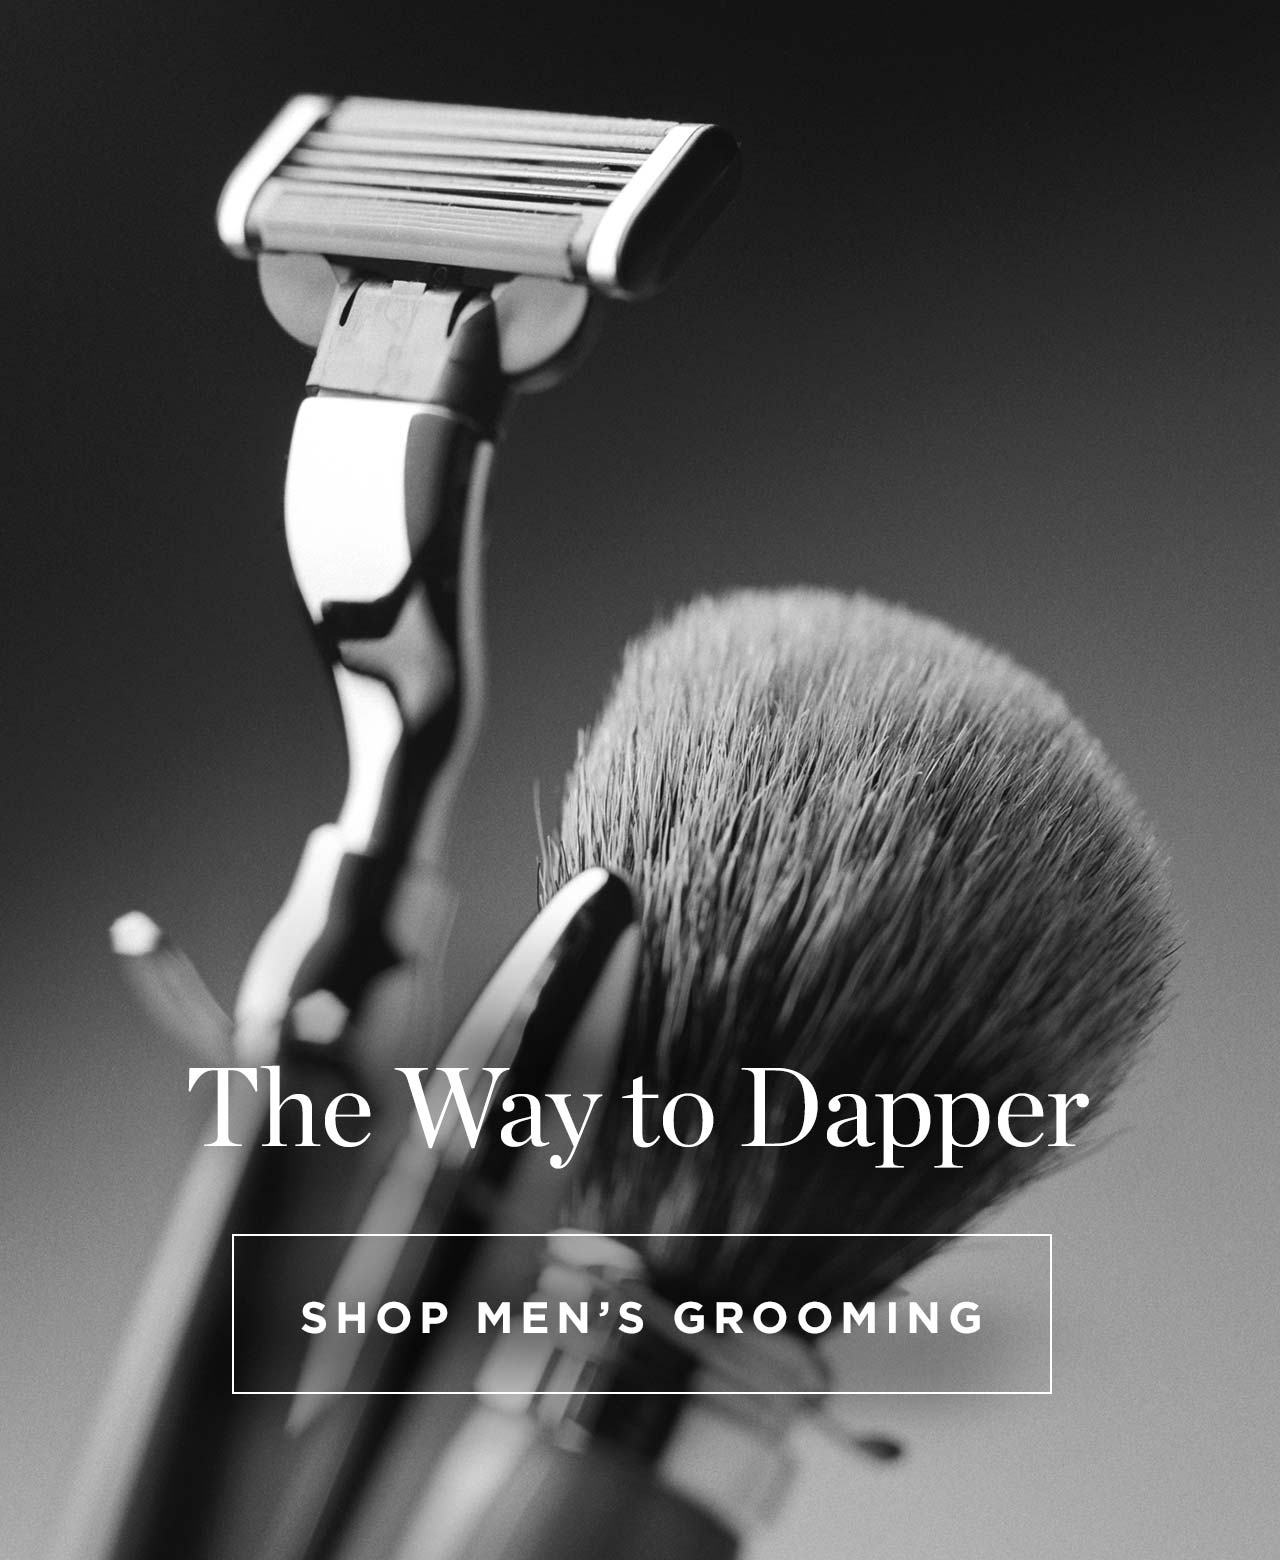 The Way to Dapper